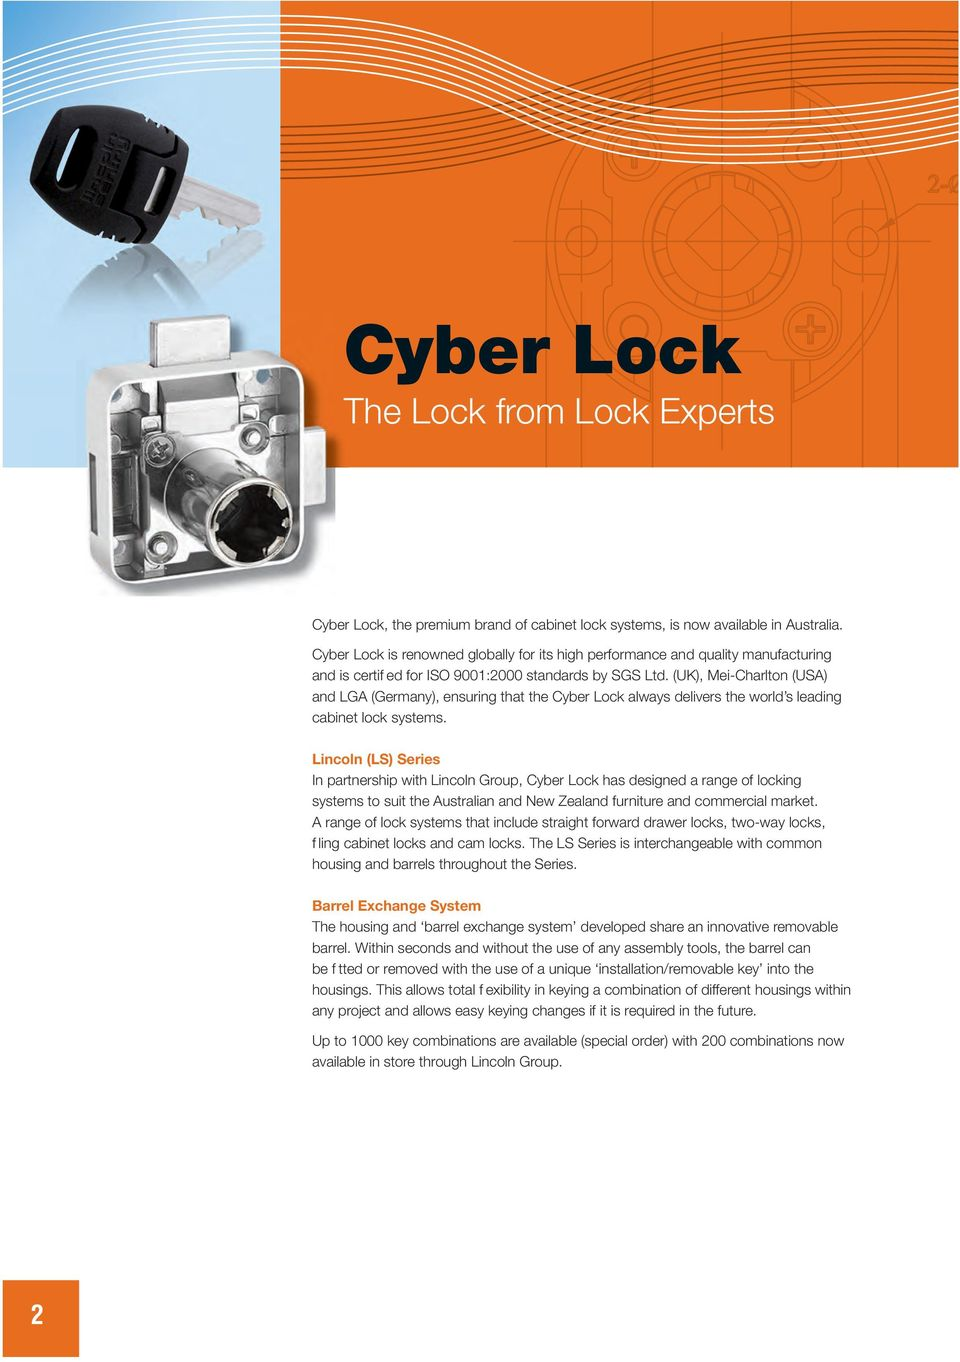 (UK), Mei-Charlton (USA) and LGA (Germany), ensuring that the Cyber Lock always delivers the world s leading cabinet lock systems.